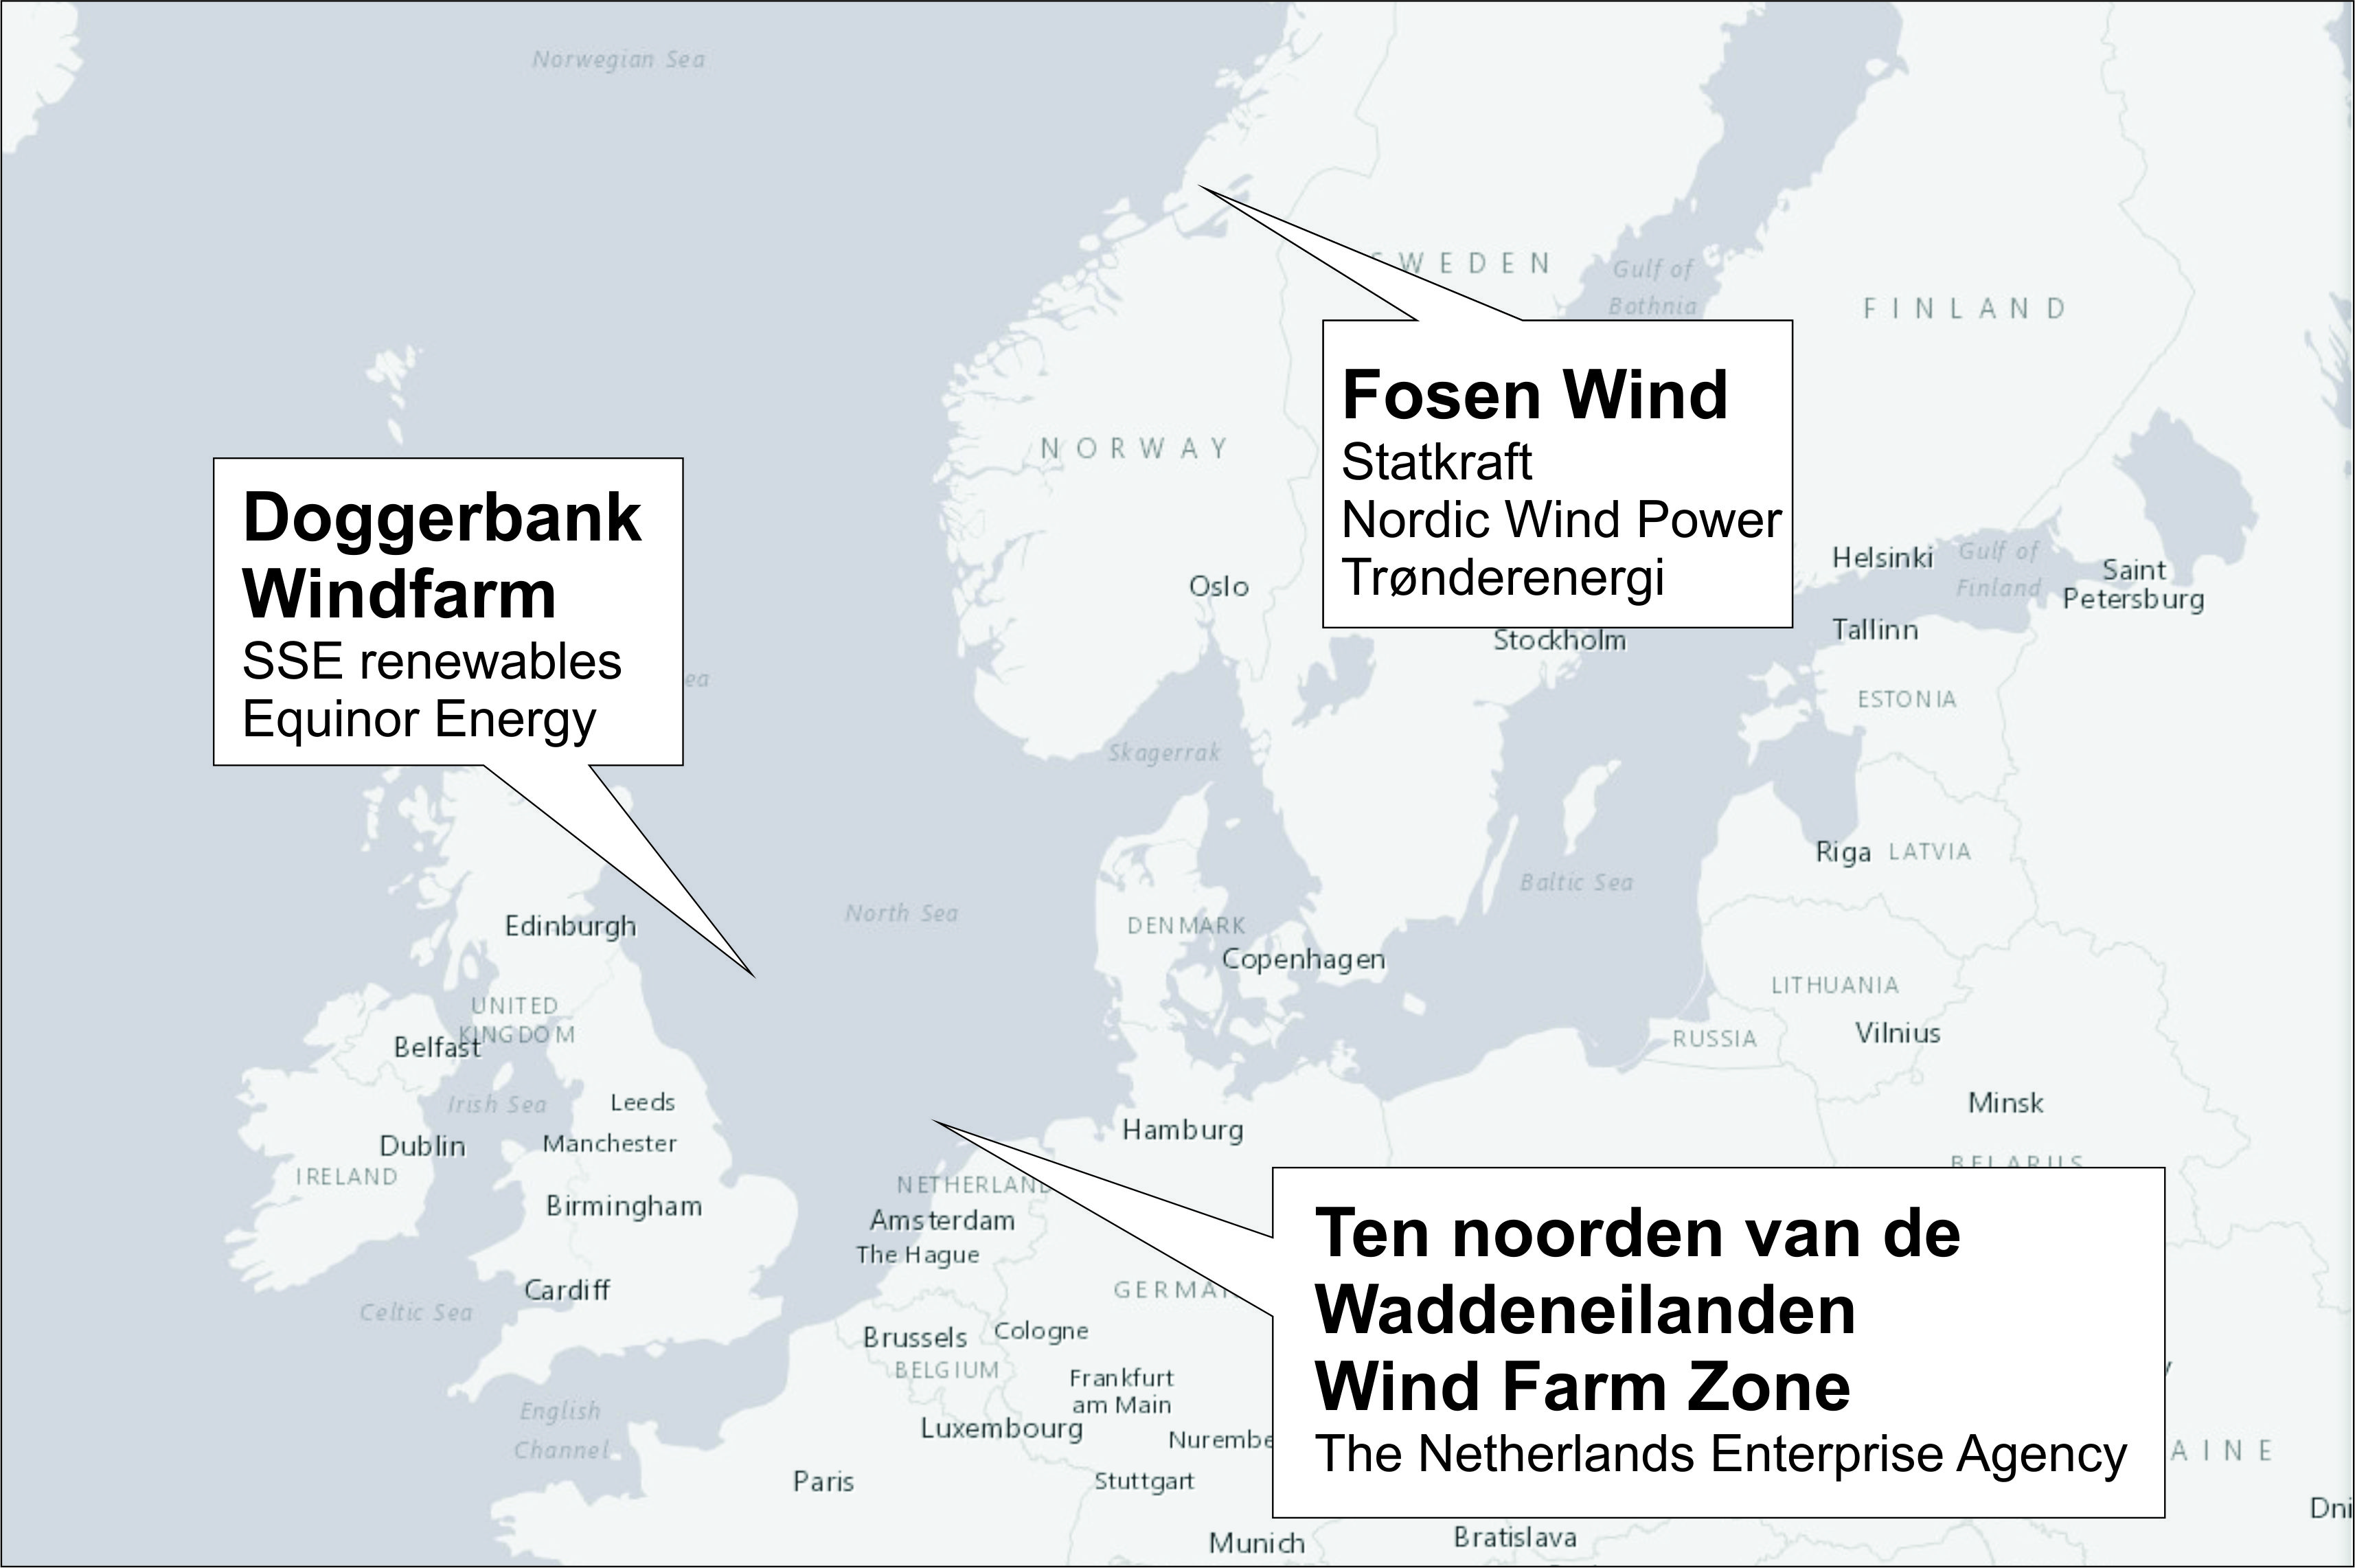 Building of the world's largest offshore wind farm started